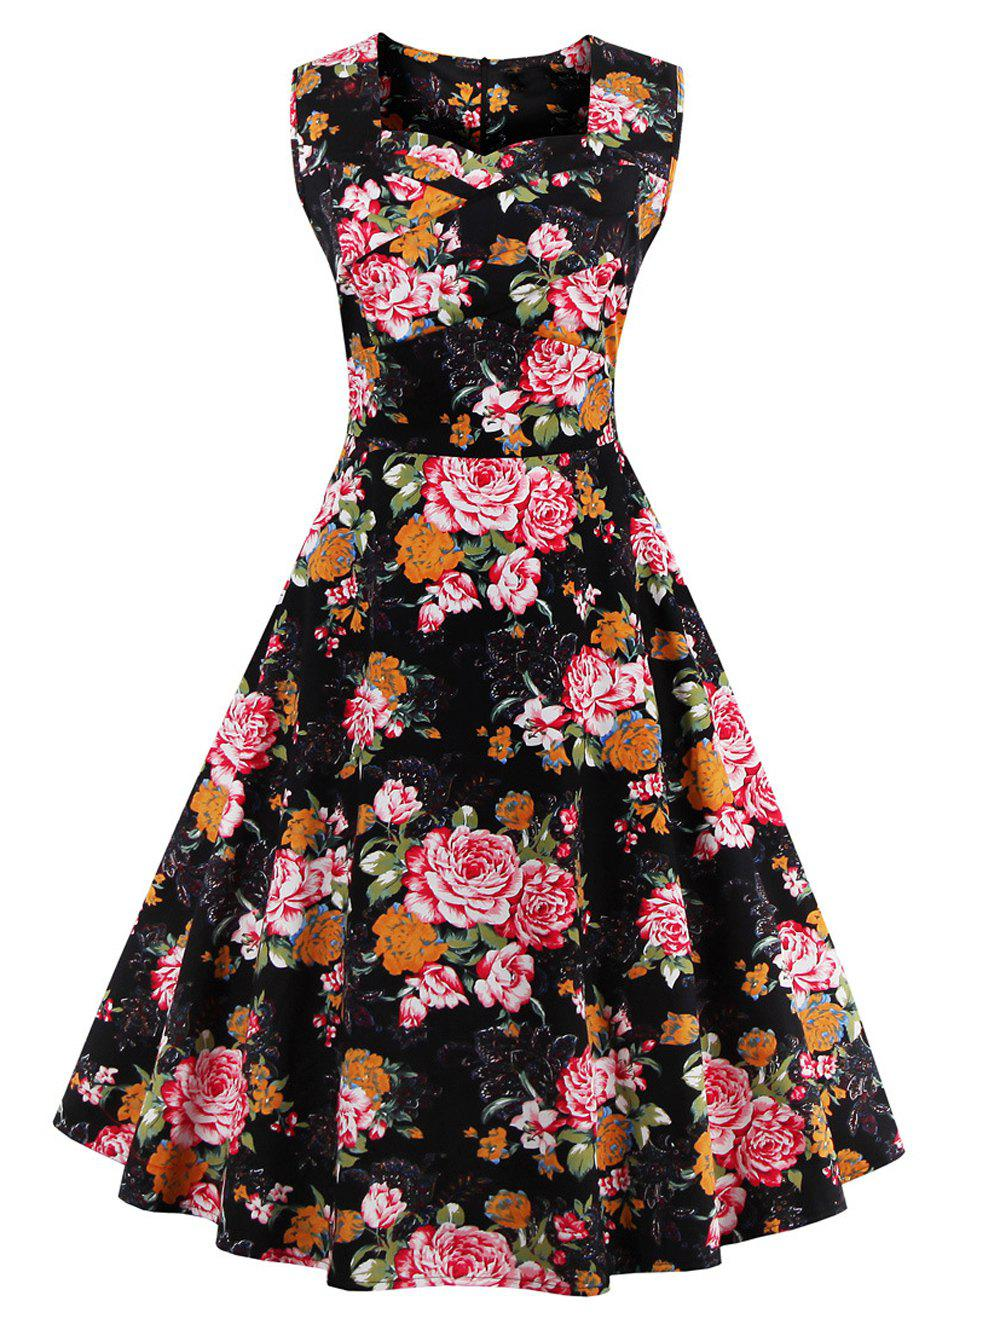 Retro Sweetheart Neck Floral Tea Length Skater Dress - COLORMIX S